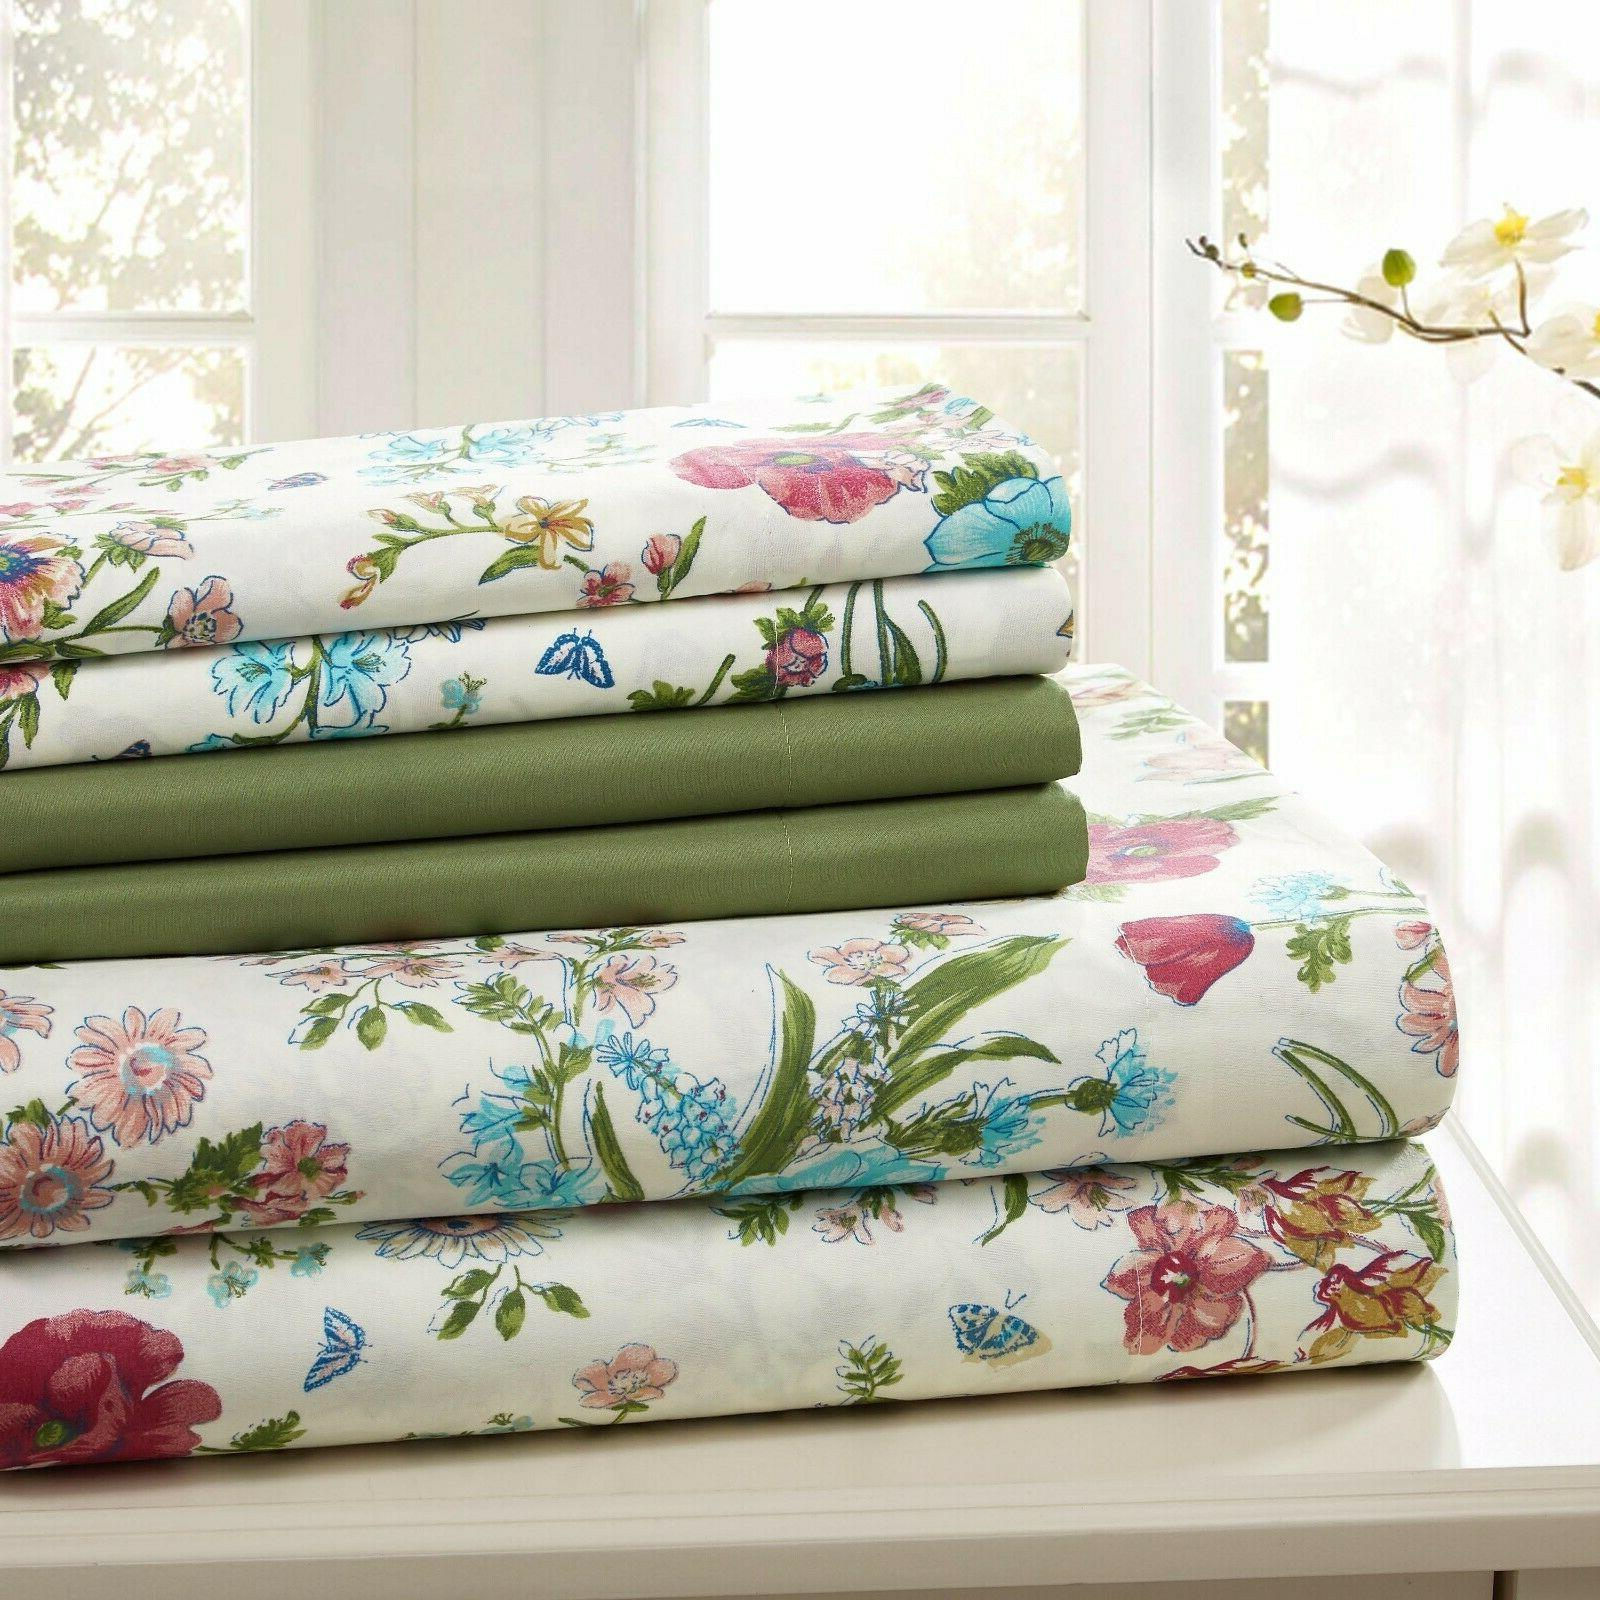 COTTON SHEET PRINTED TWIN KING FREE CLOTH